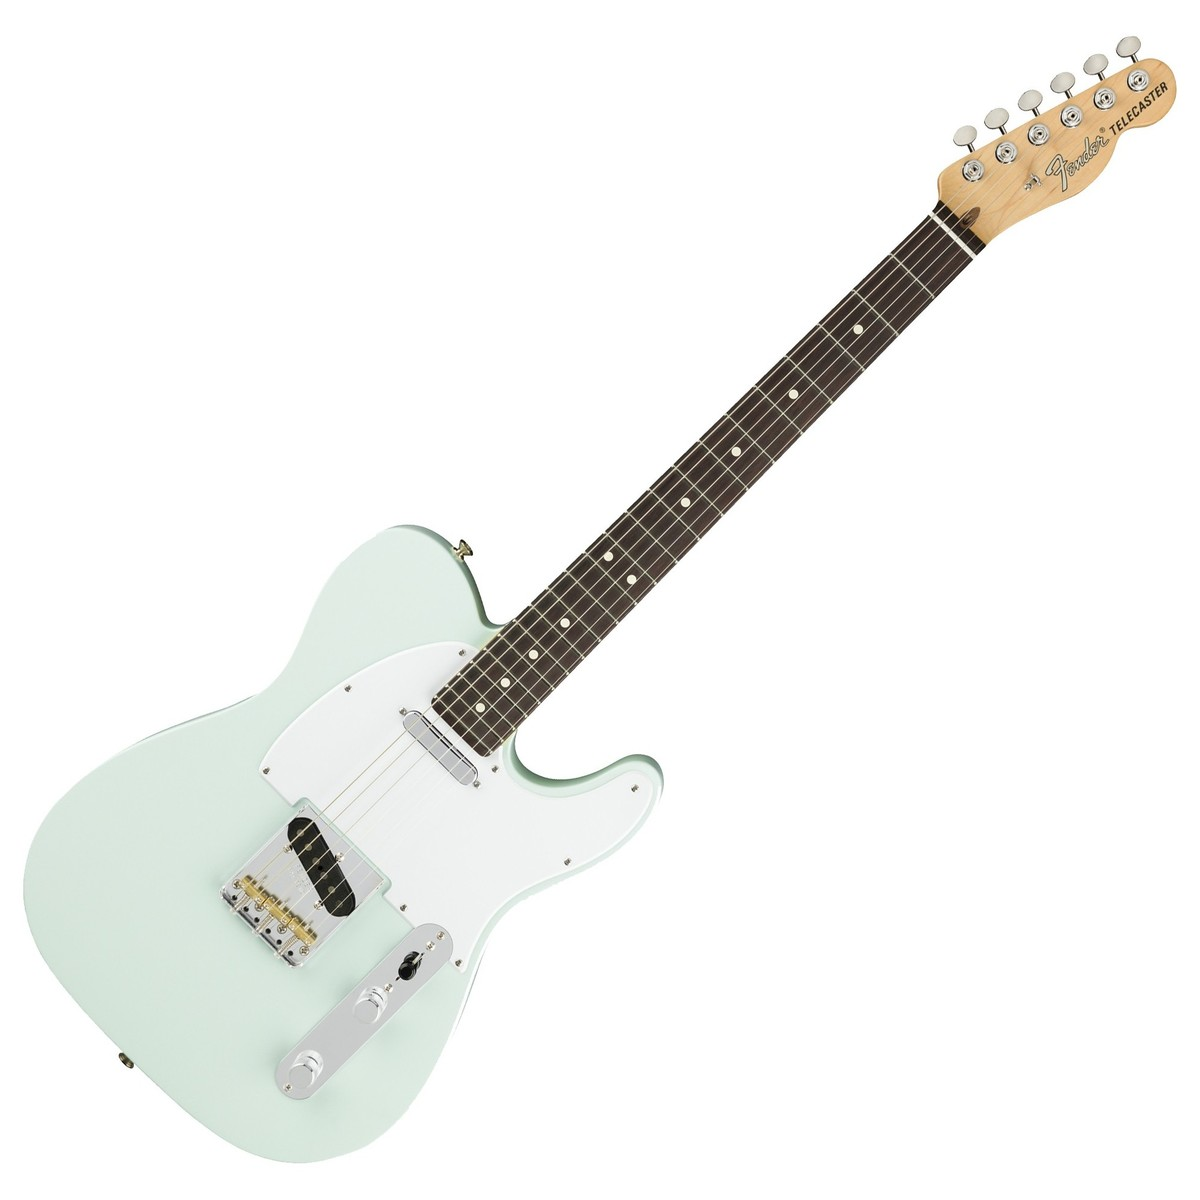 fender american performer telecaster rw satin sonic blue at gear4music. Black Bedroom Furniture Sets. Home Design Ideas